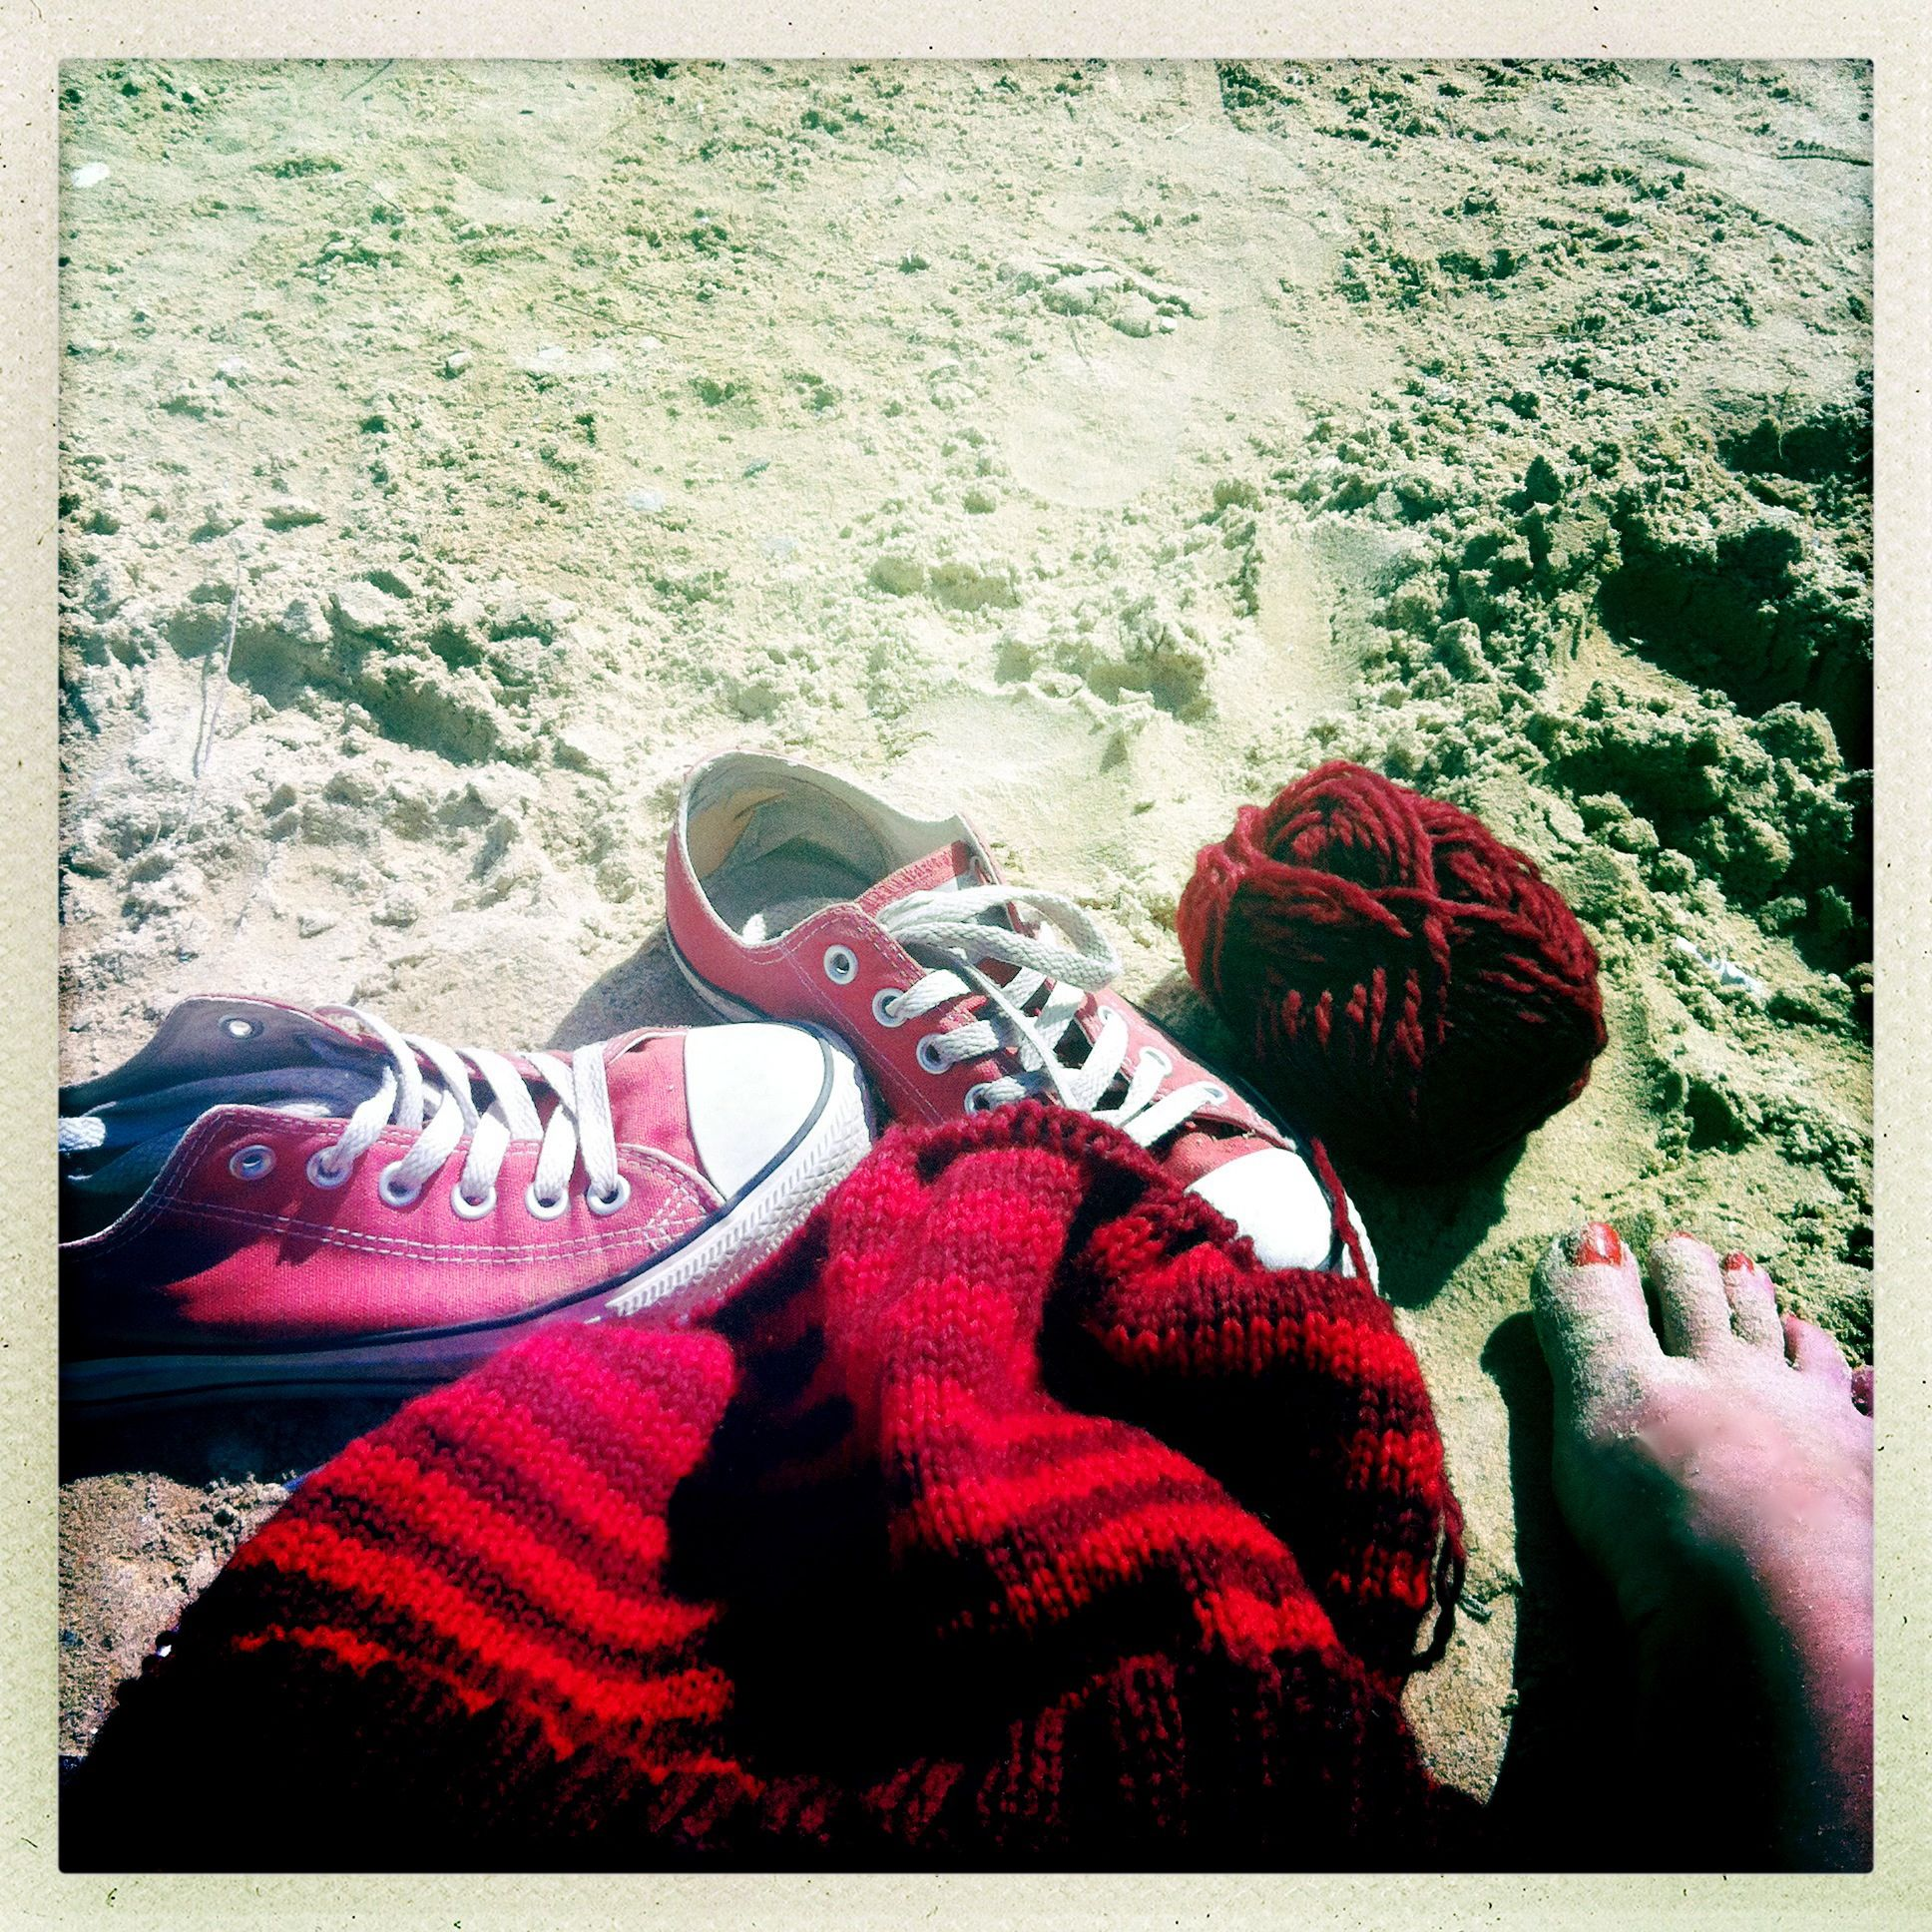 Knitting on the beach for colder autumn days!